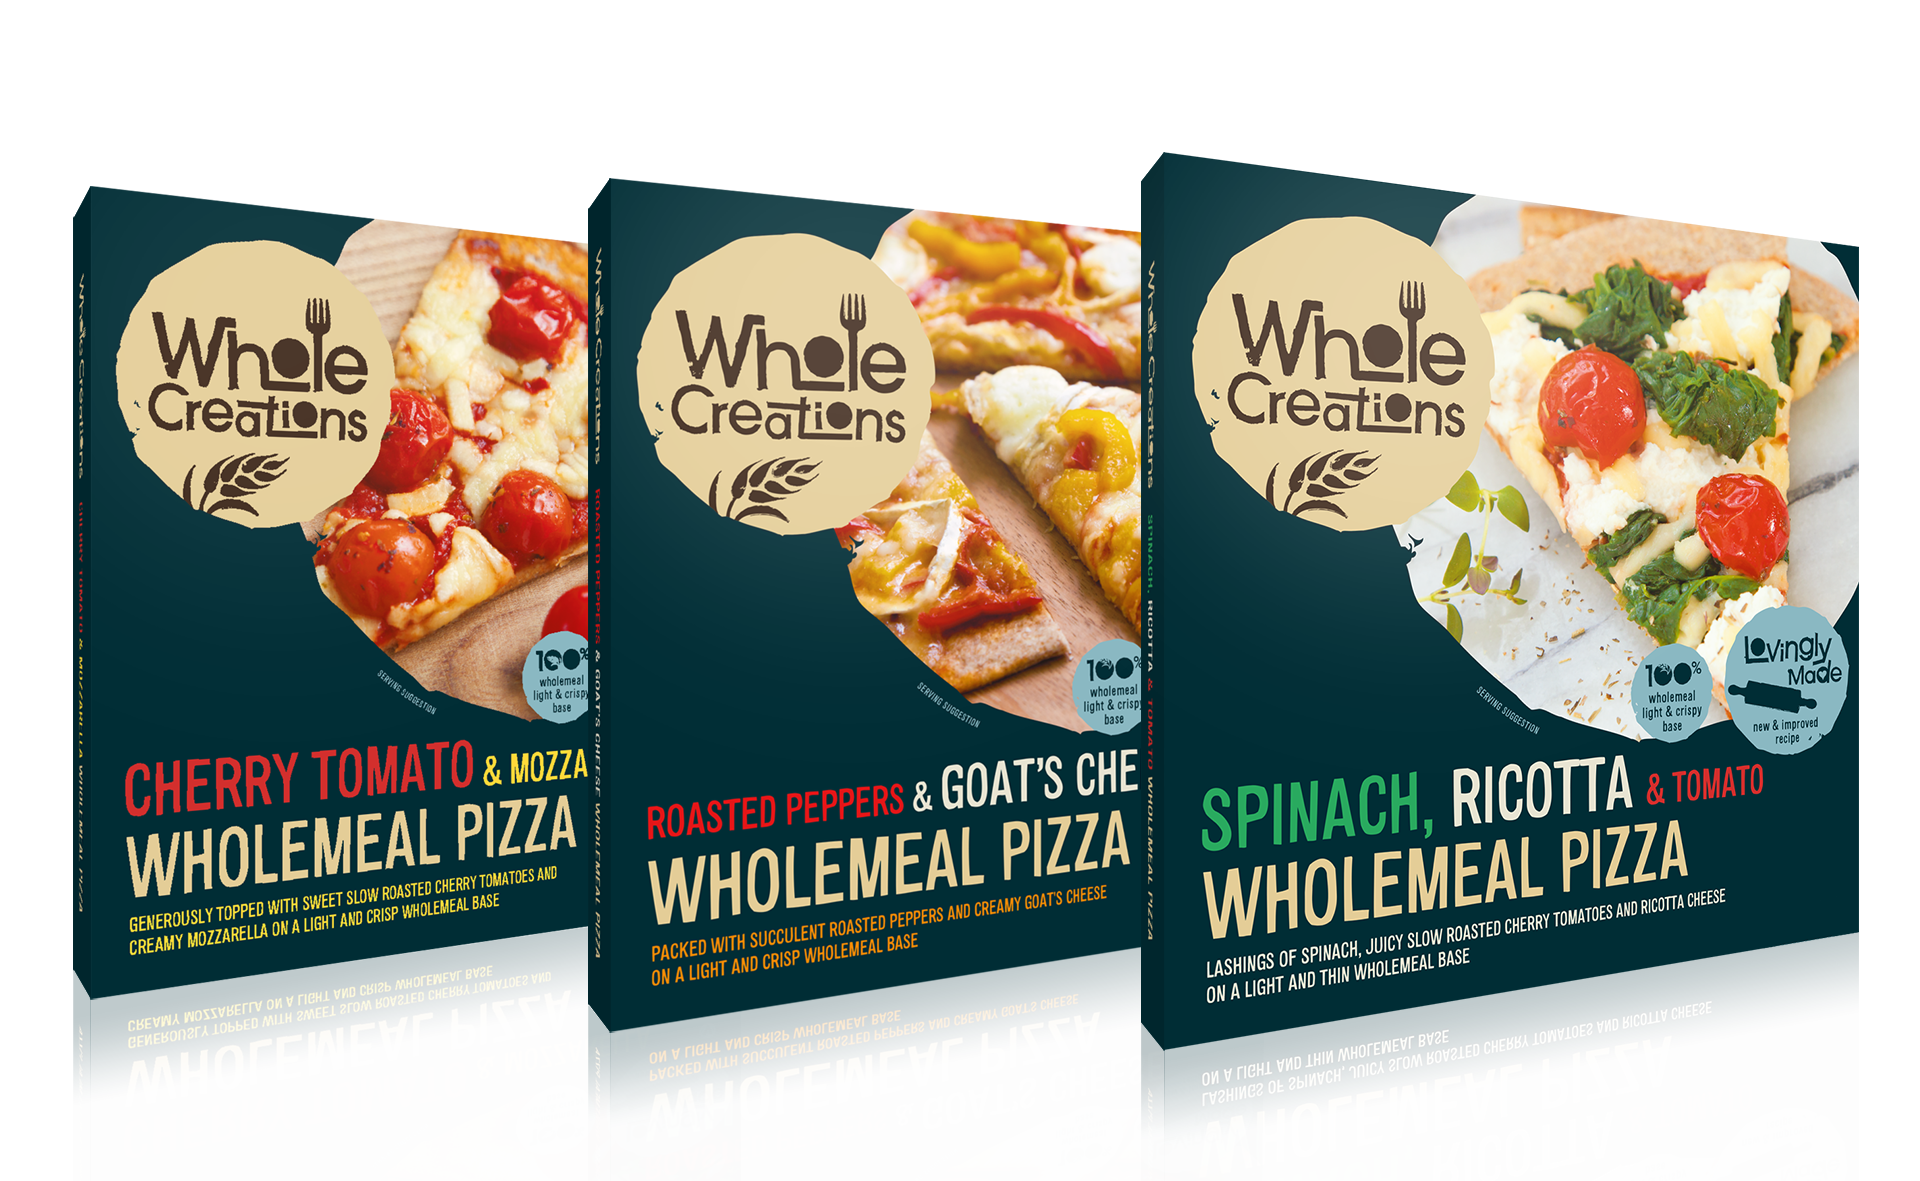 wholecreations pizza packaging